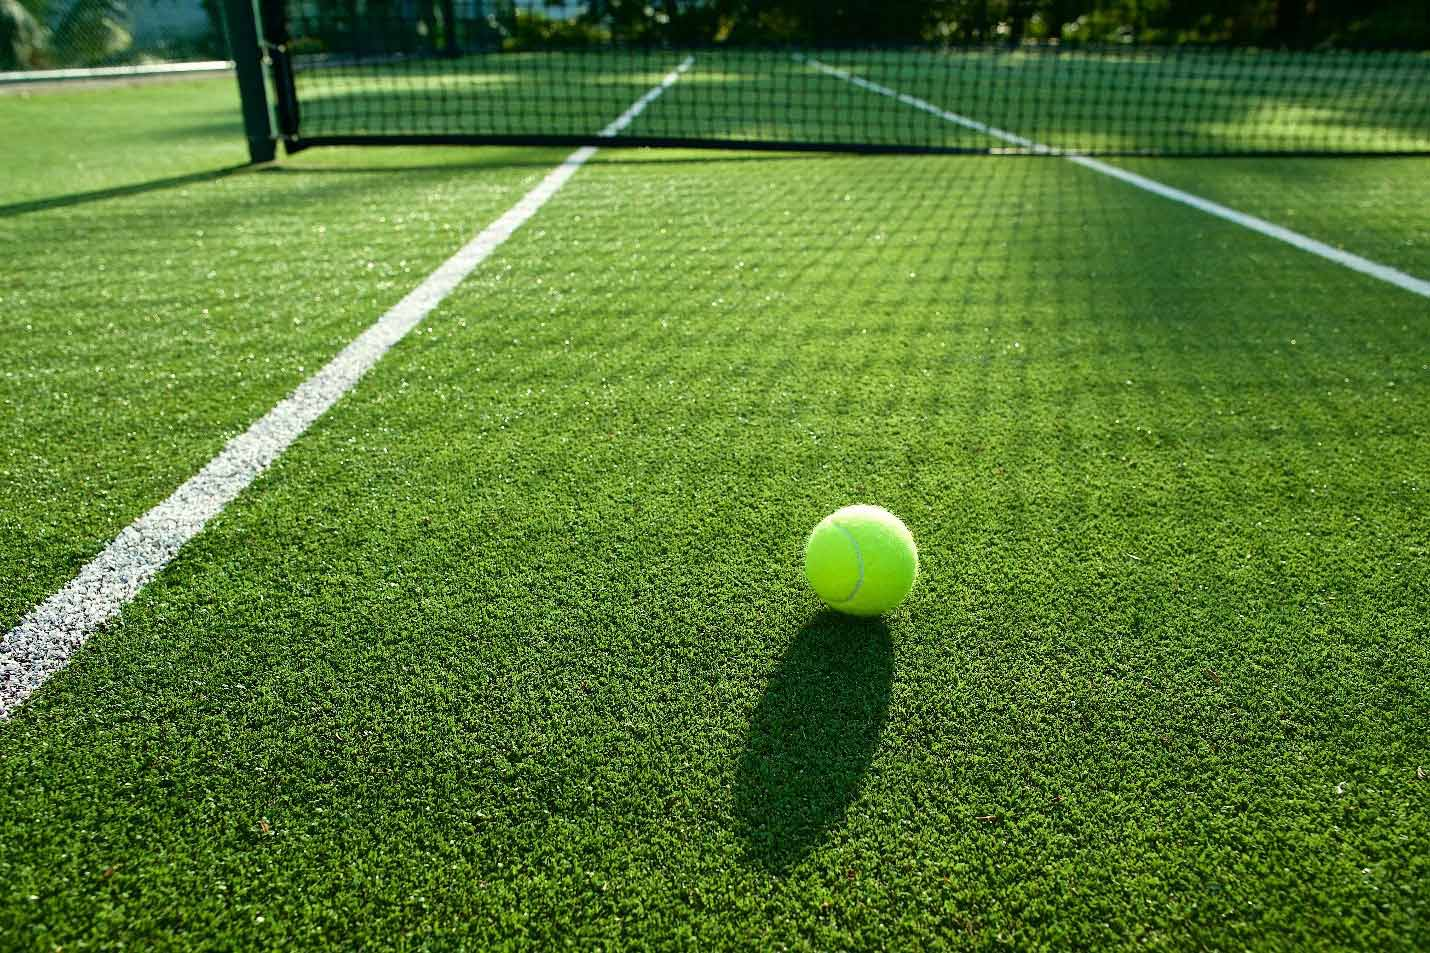 when it comes to artificial turf, there are many places around the country that set a great example as to why more homeowners are opting for this material for personal use, too.